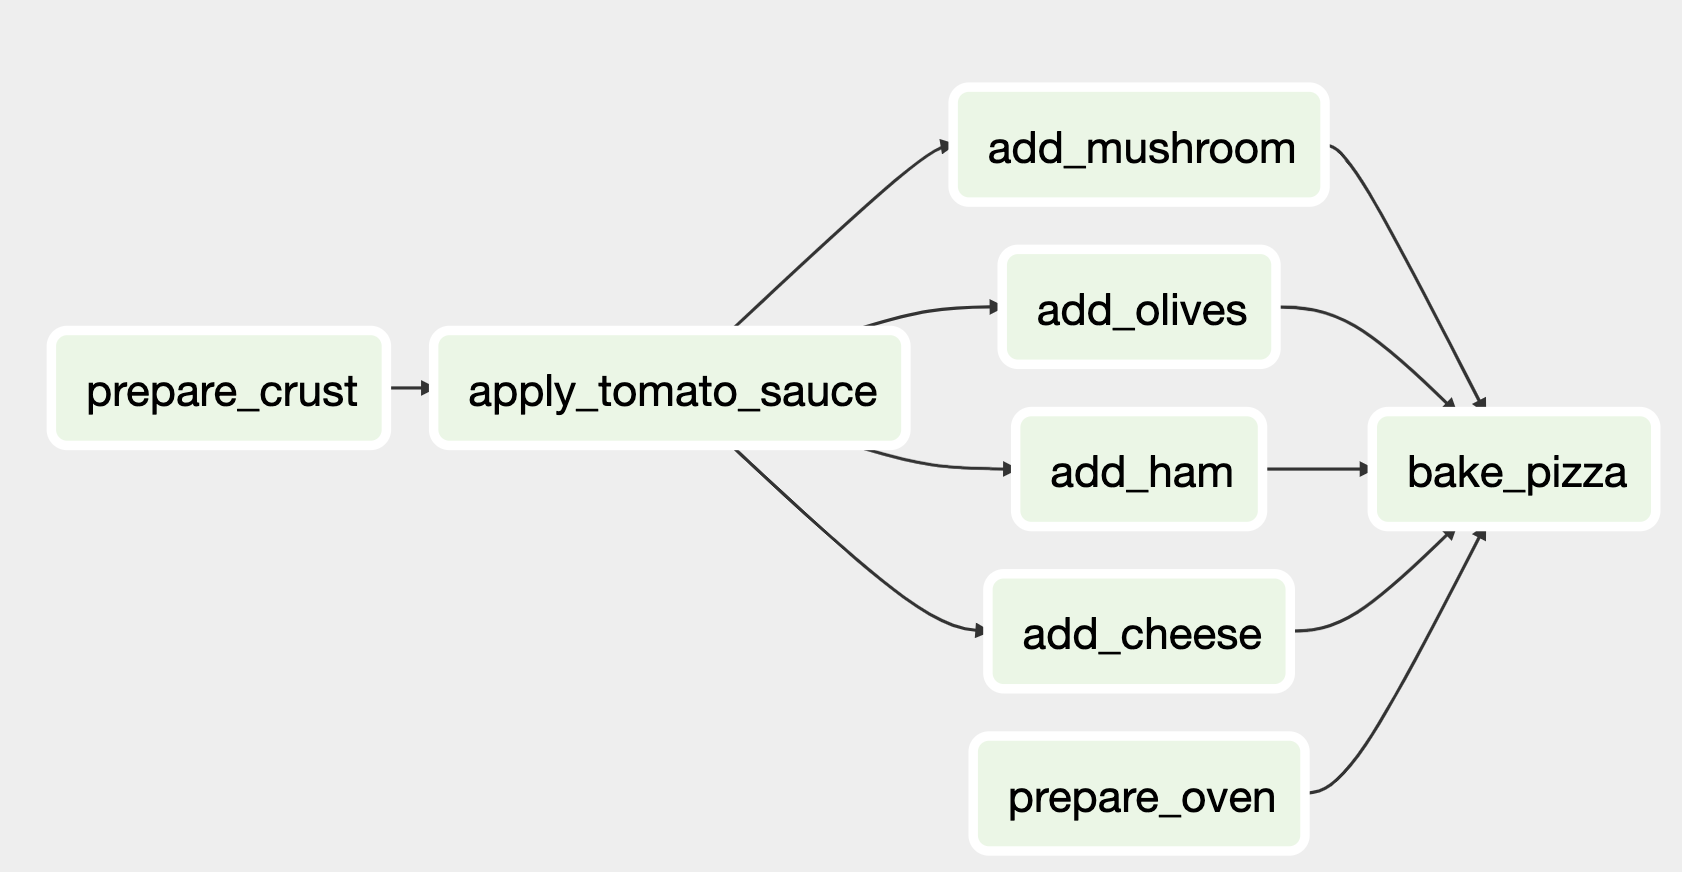 Airflow DAG illustrating the sequence of tasks for preparing a pizza